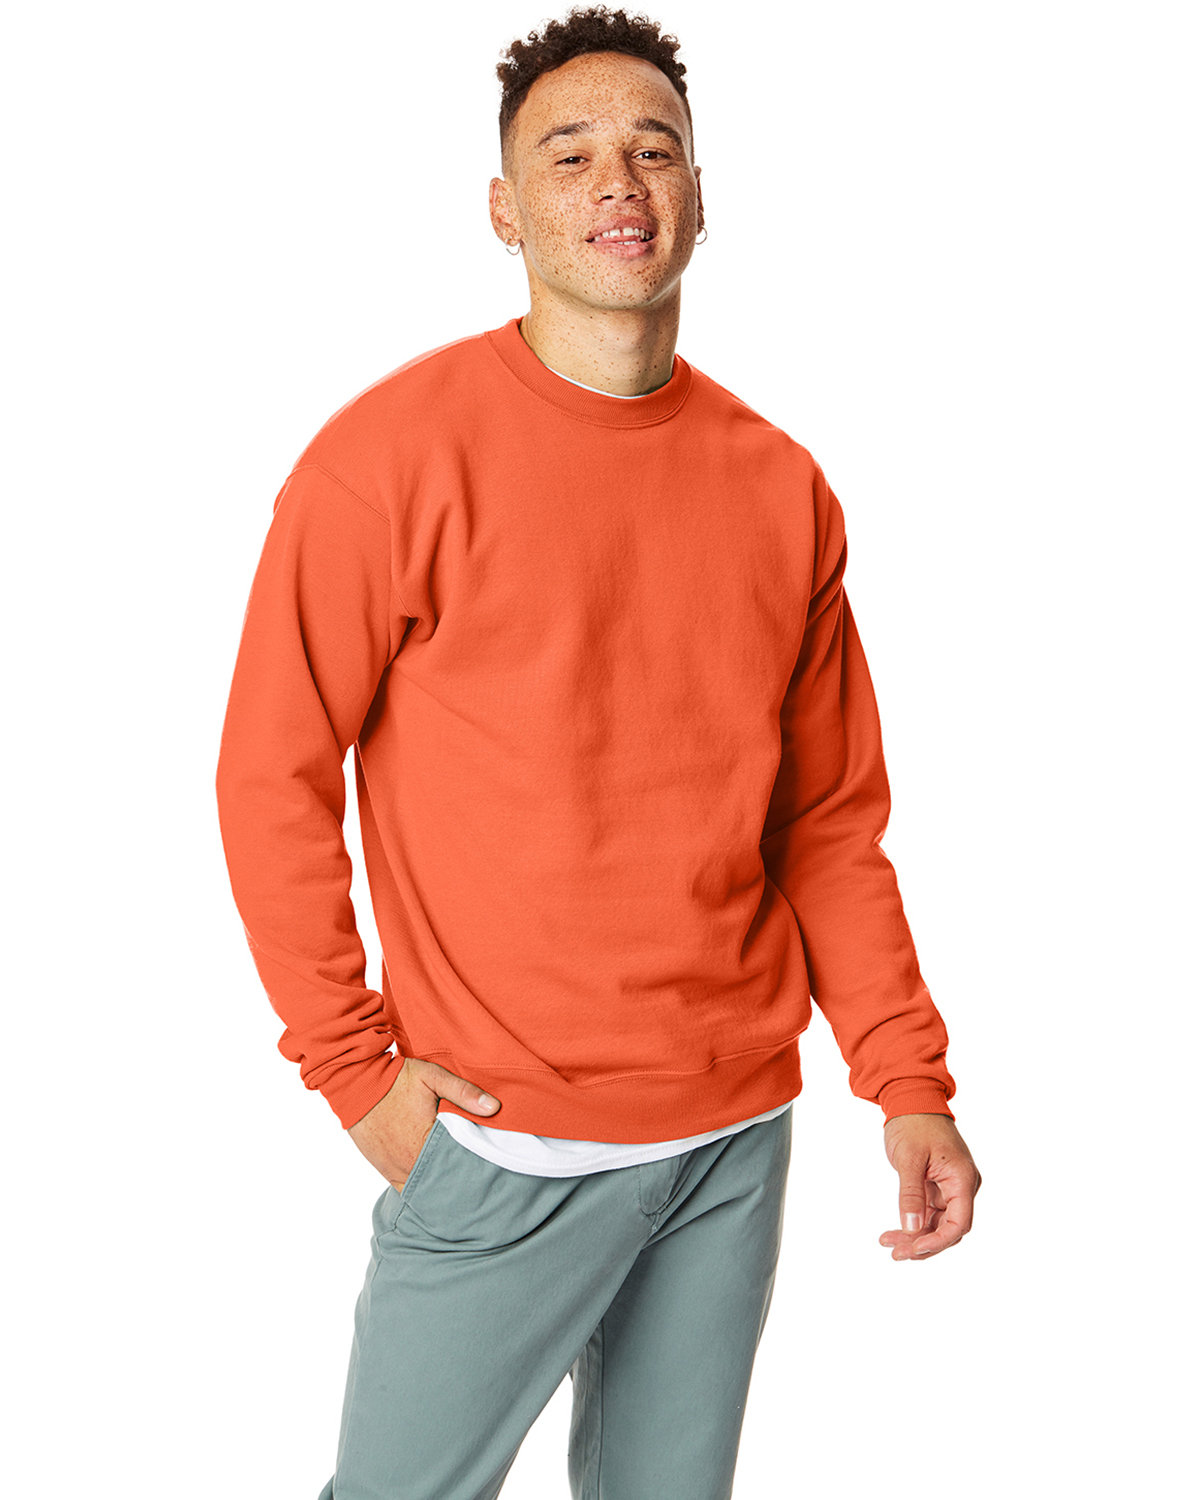 Hanes Unisex 7.8 oz., Ecosmart® 50/50 Crewneck Sweatshirt ORANGE